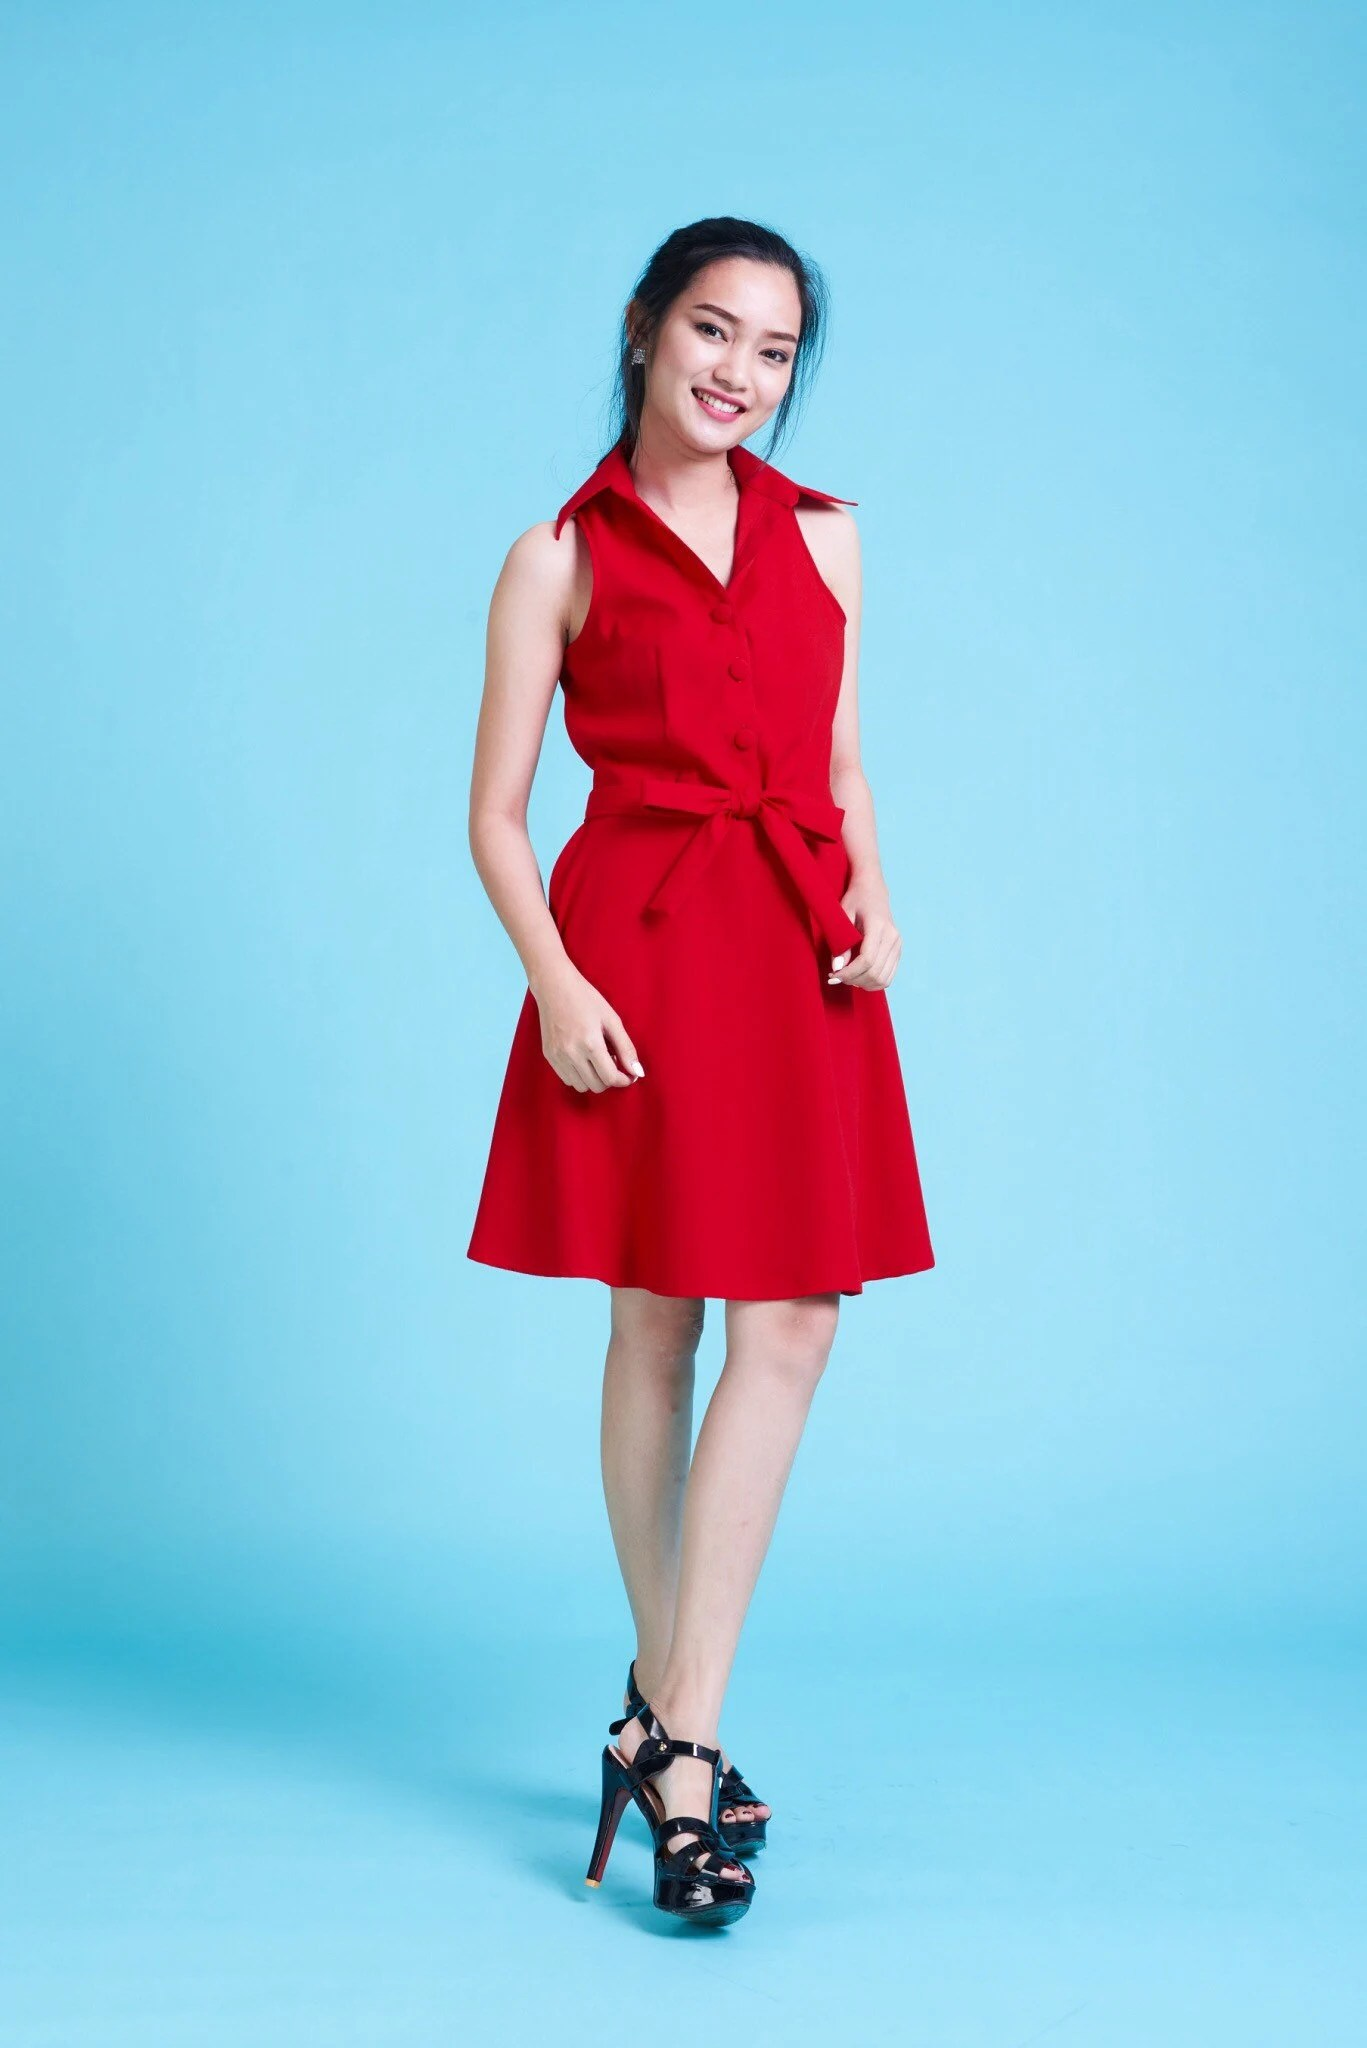 downtown scarlet red dress